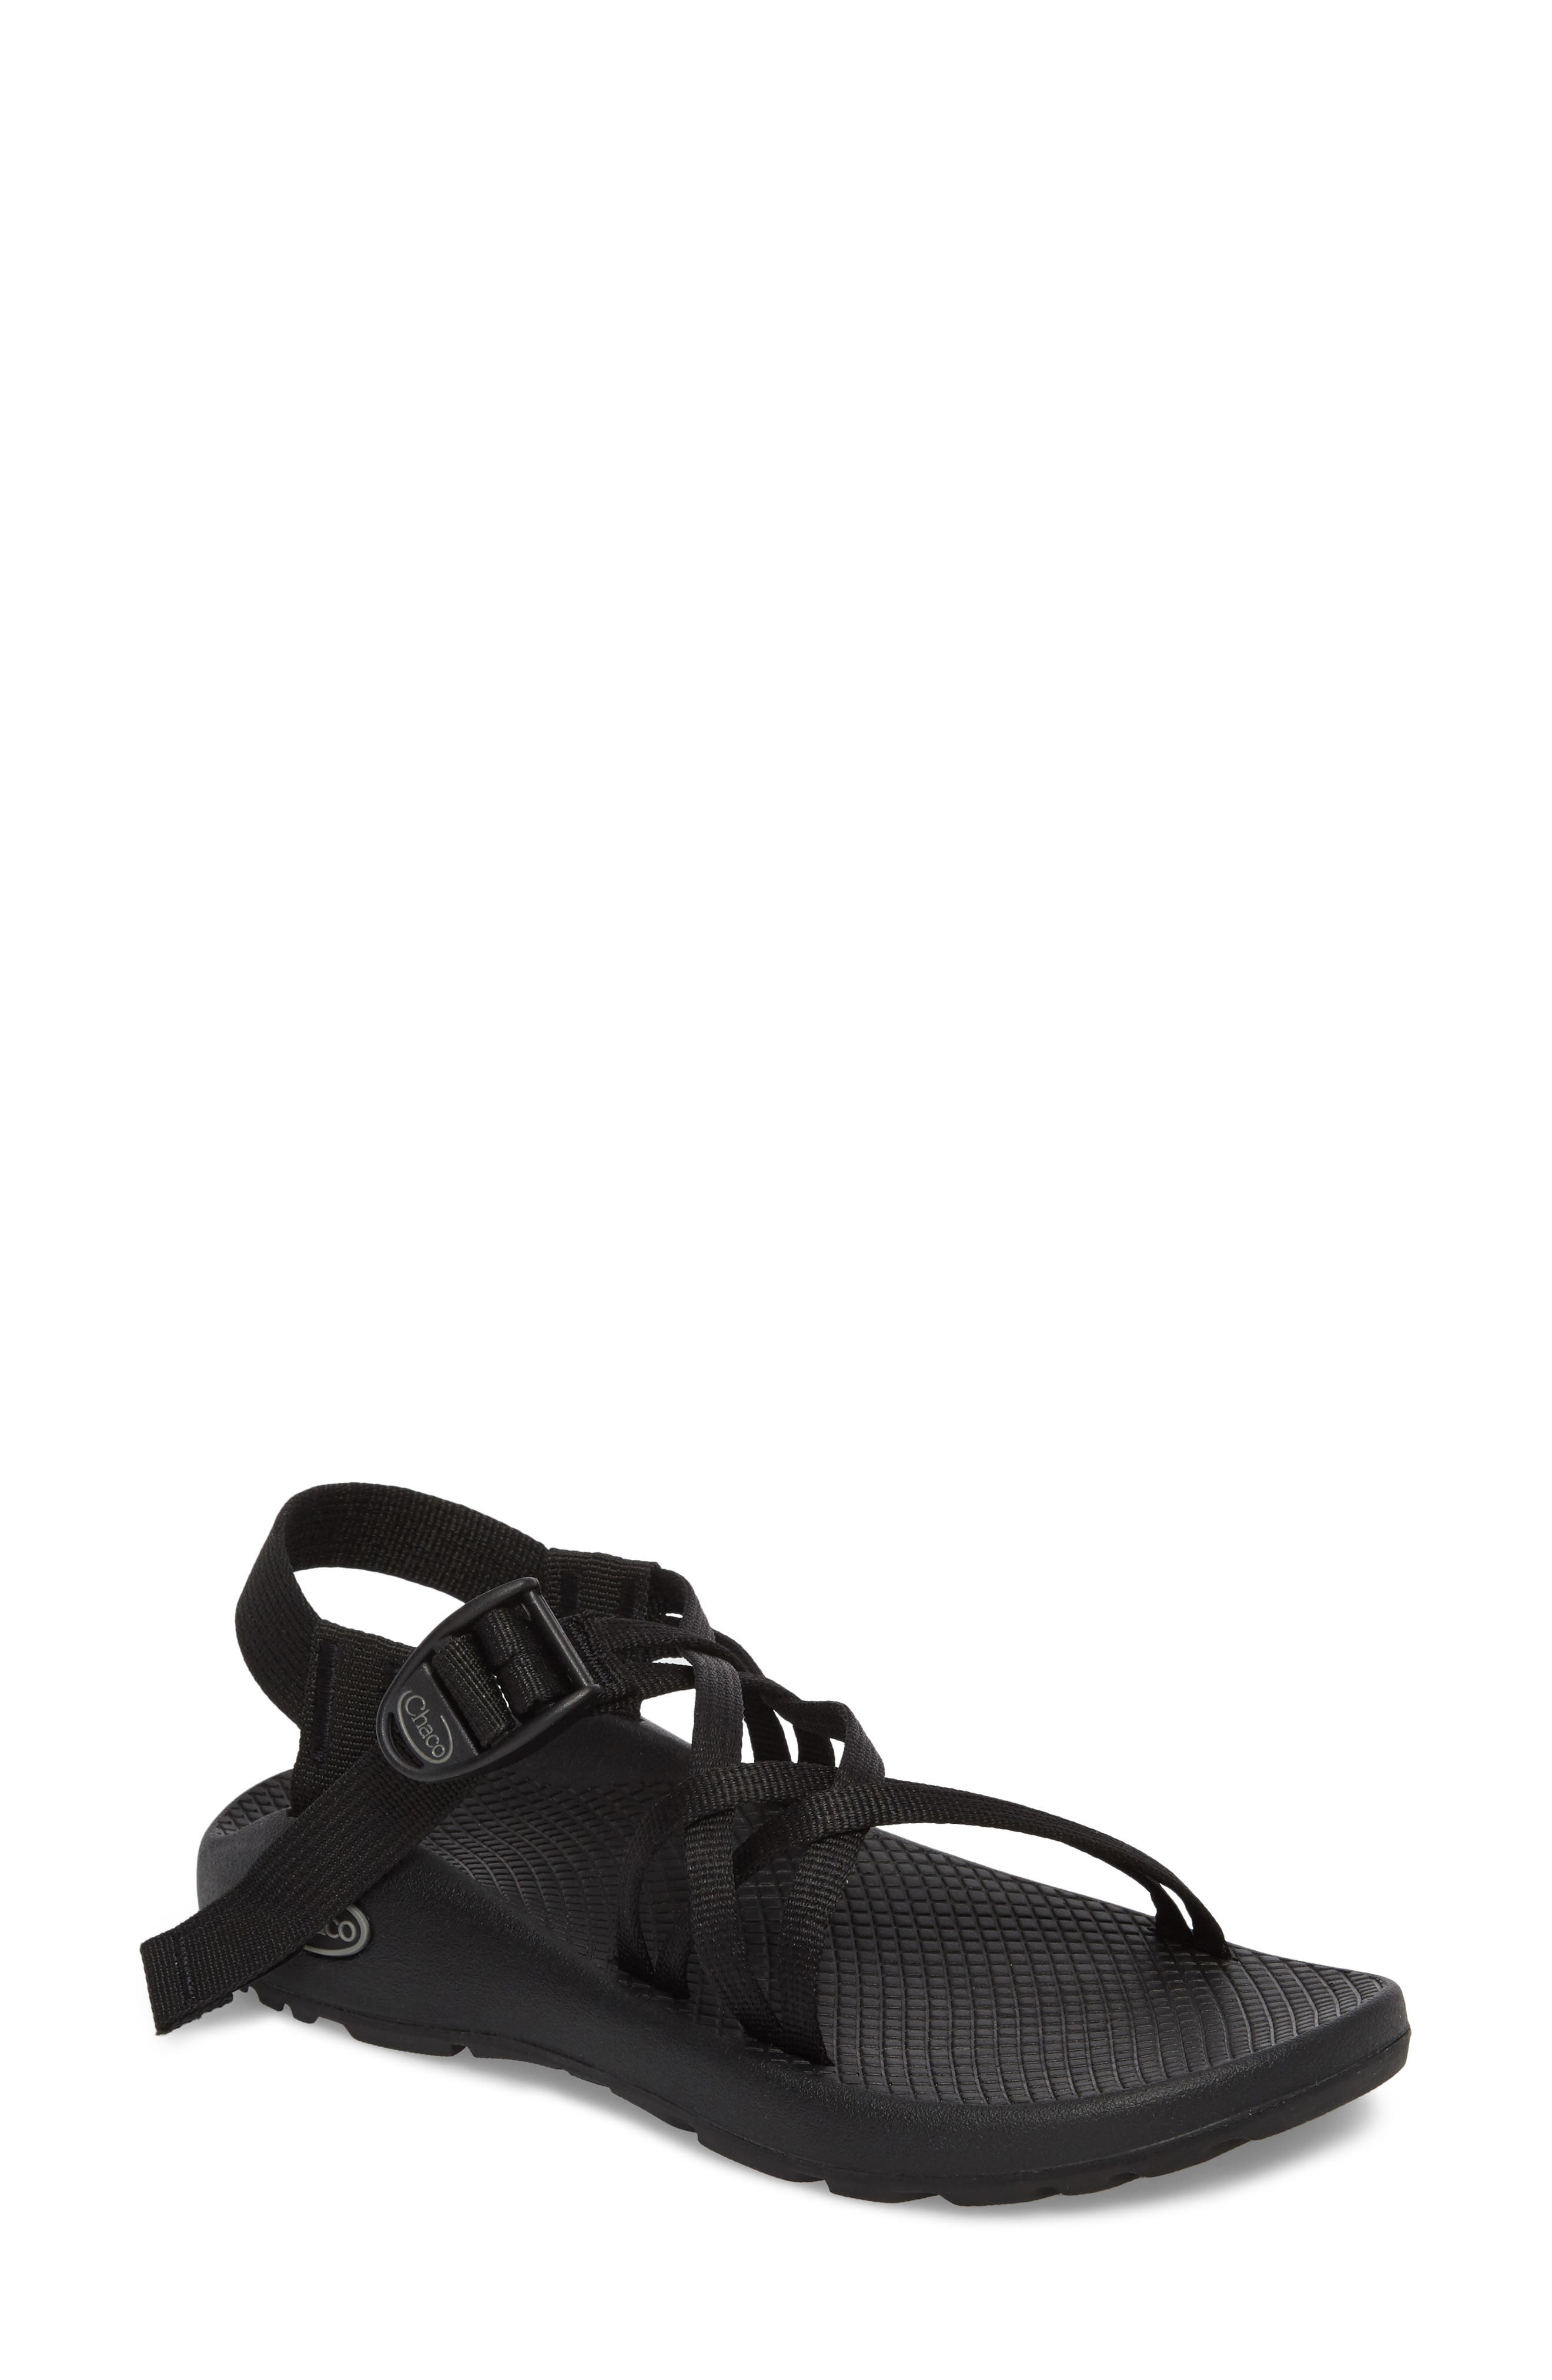 Beloved by camp counselors and river-raft guides since 1989, this water-friendly sandal is made with the brand\\\'s ChacoGrip rubber sole and a podiatrist-certified LUVSEAT no-slip footbed that keeps your foot comfortable and firmly in place. Style Name: Chaco Zx1 Classic Sport Sandal (Women). Style Number: 5530351. Available in stores.